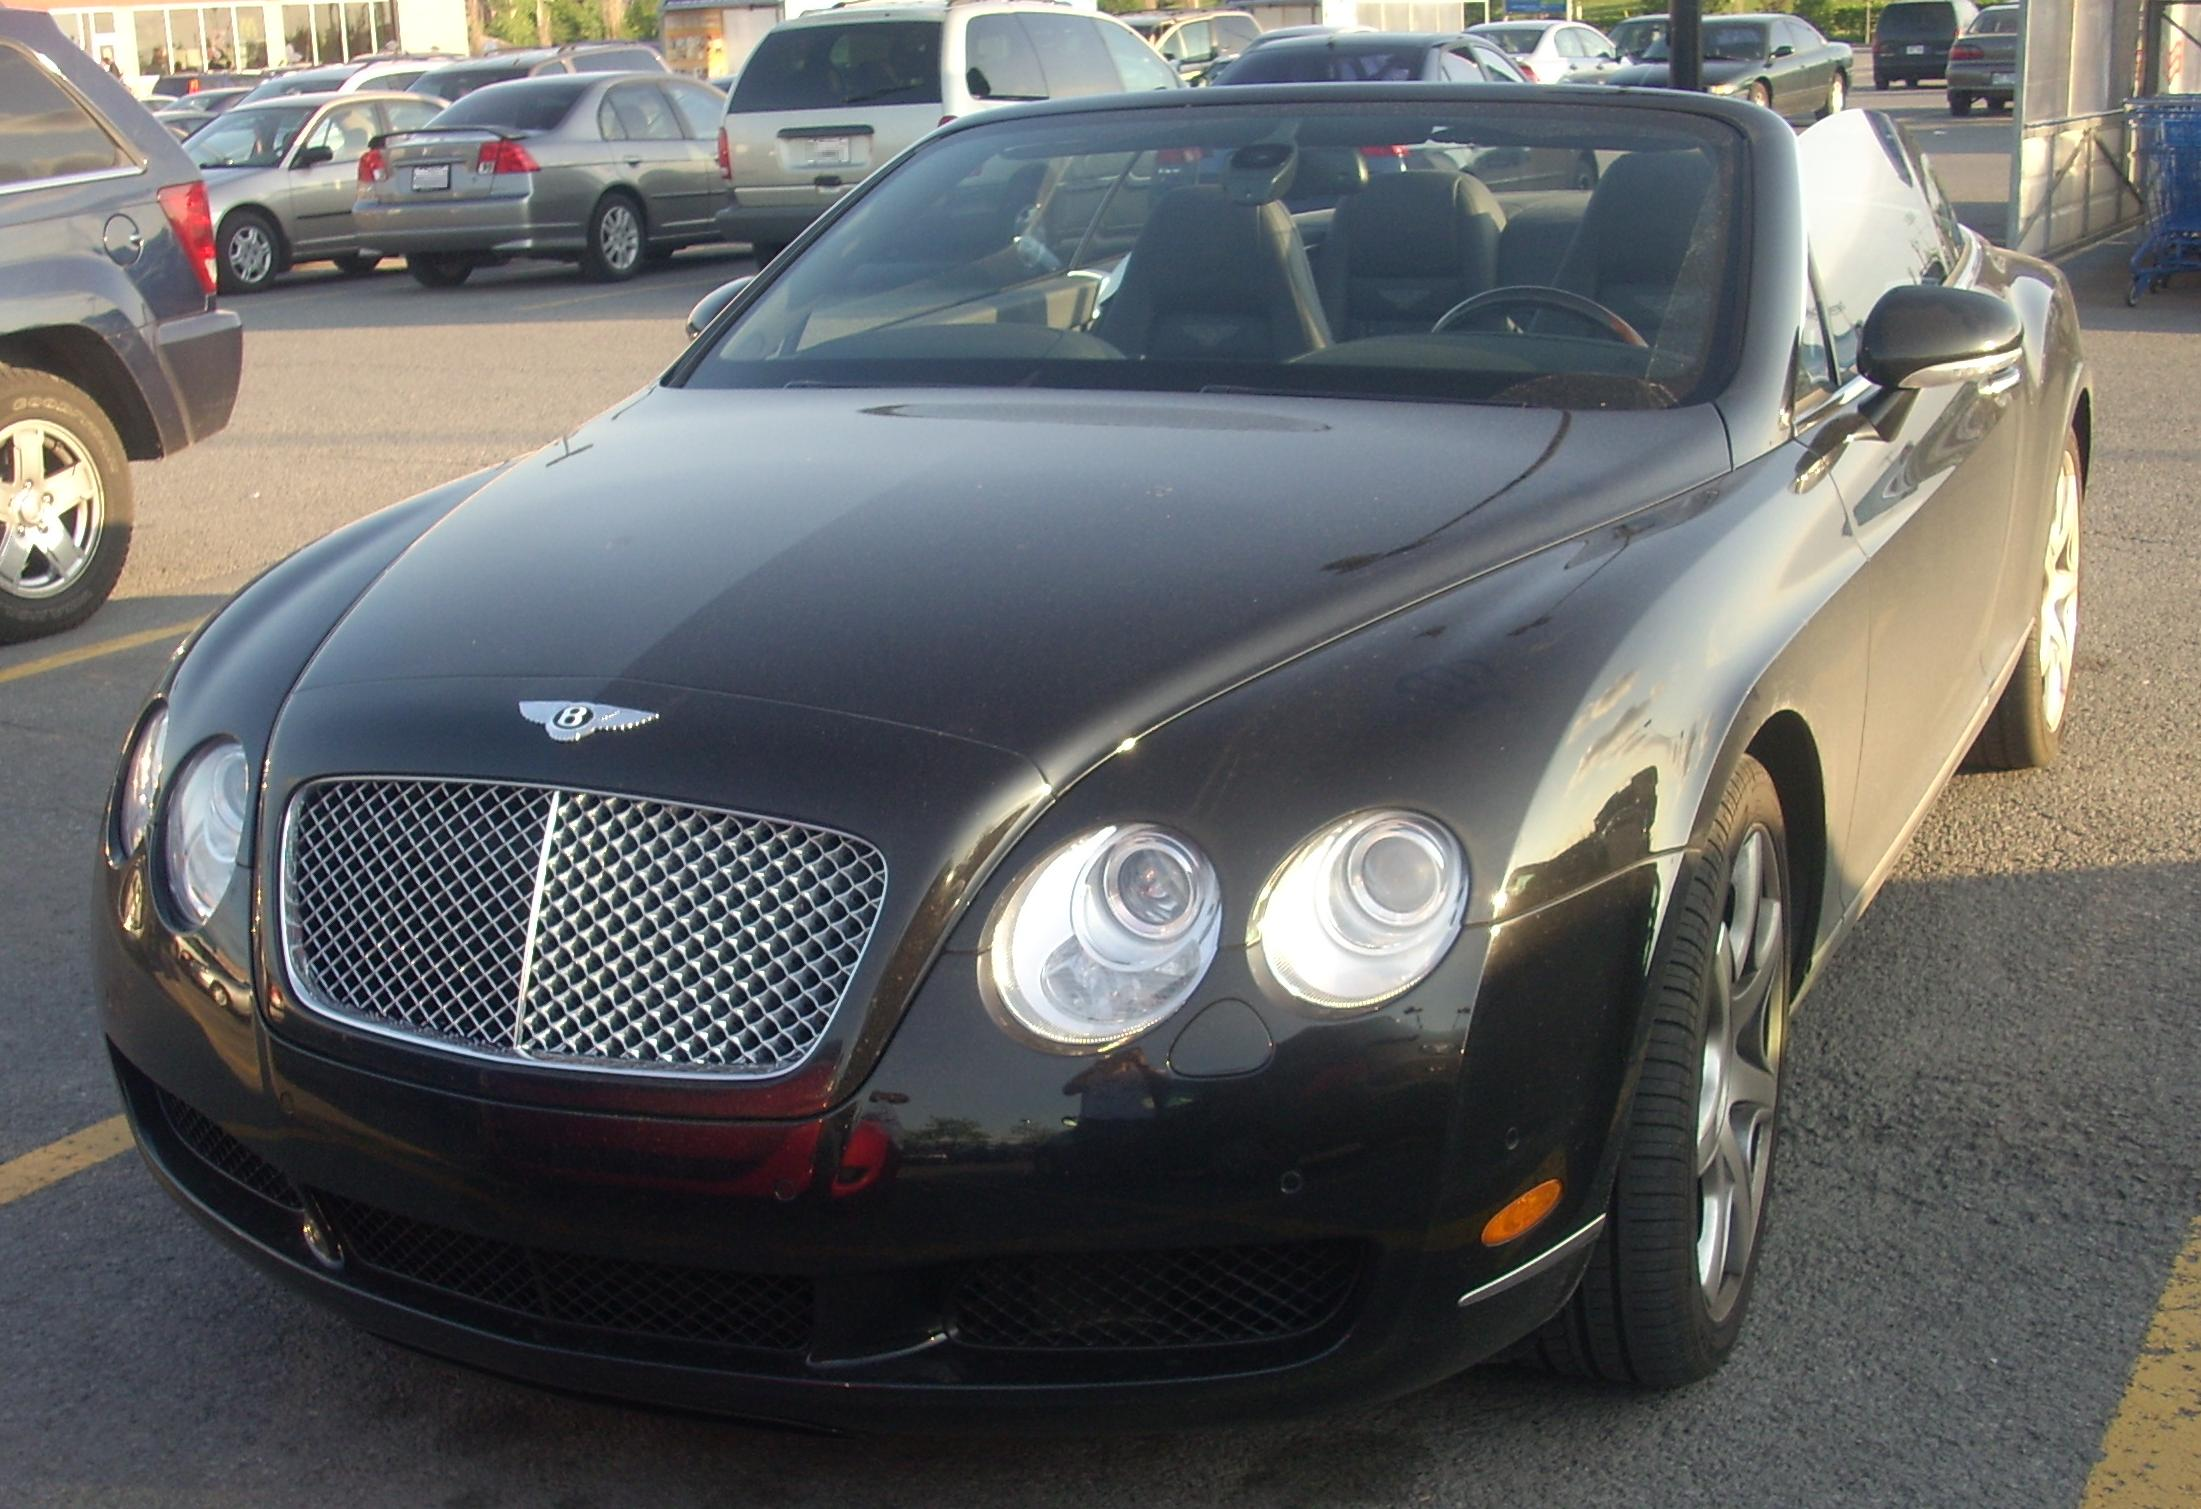 Bentley Continental Dimensions >> File:Bentley Continental GTC.JPG - Wikimedia Commons